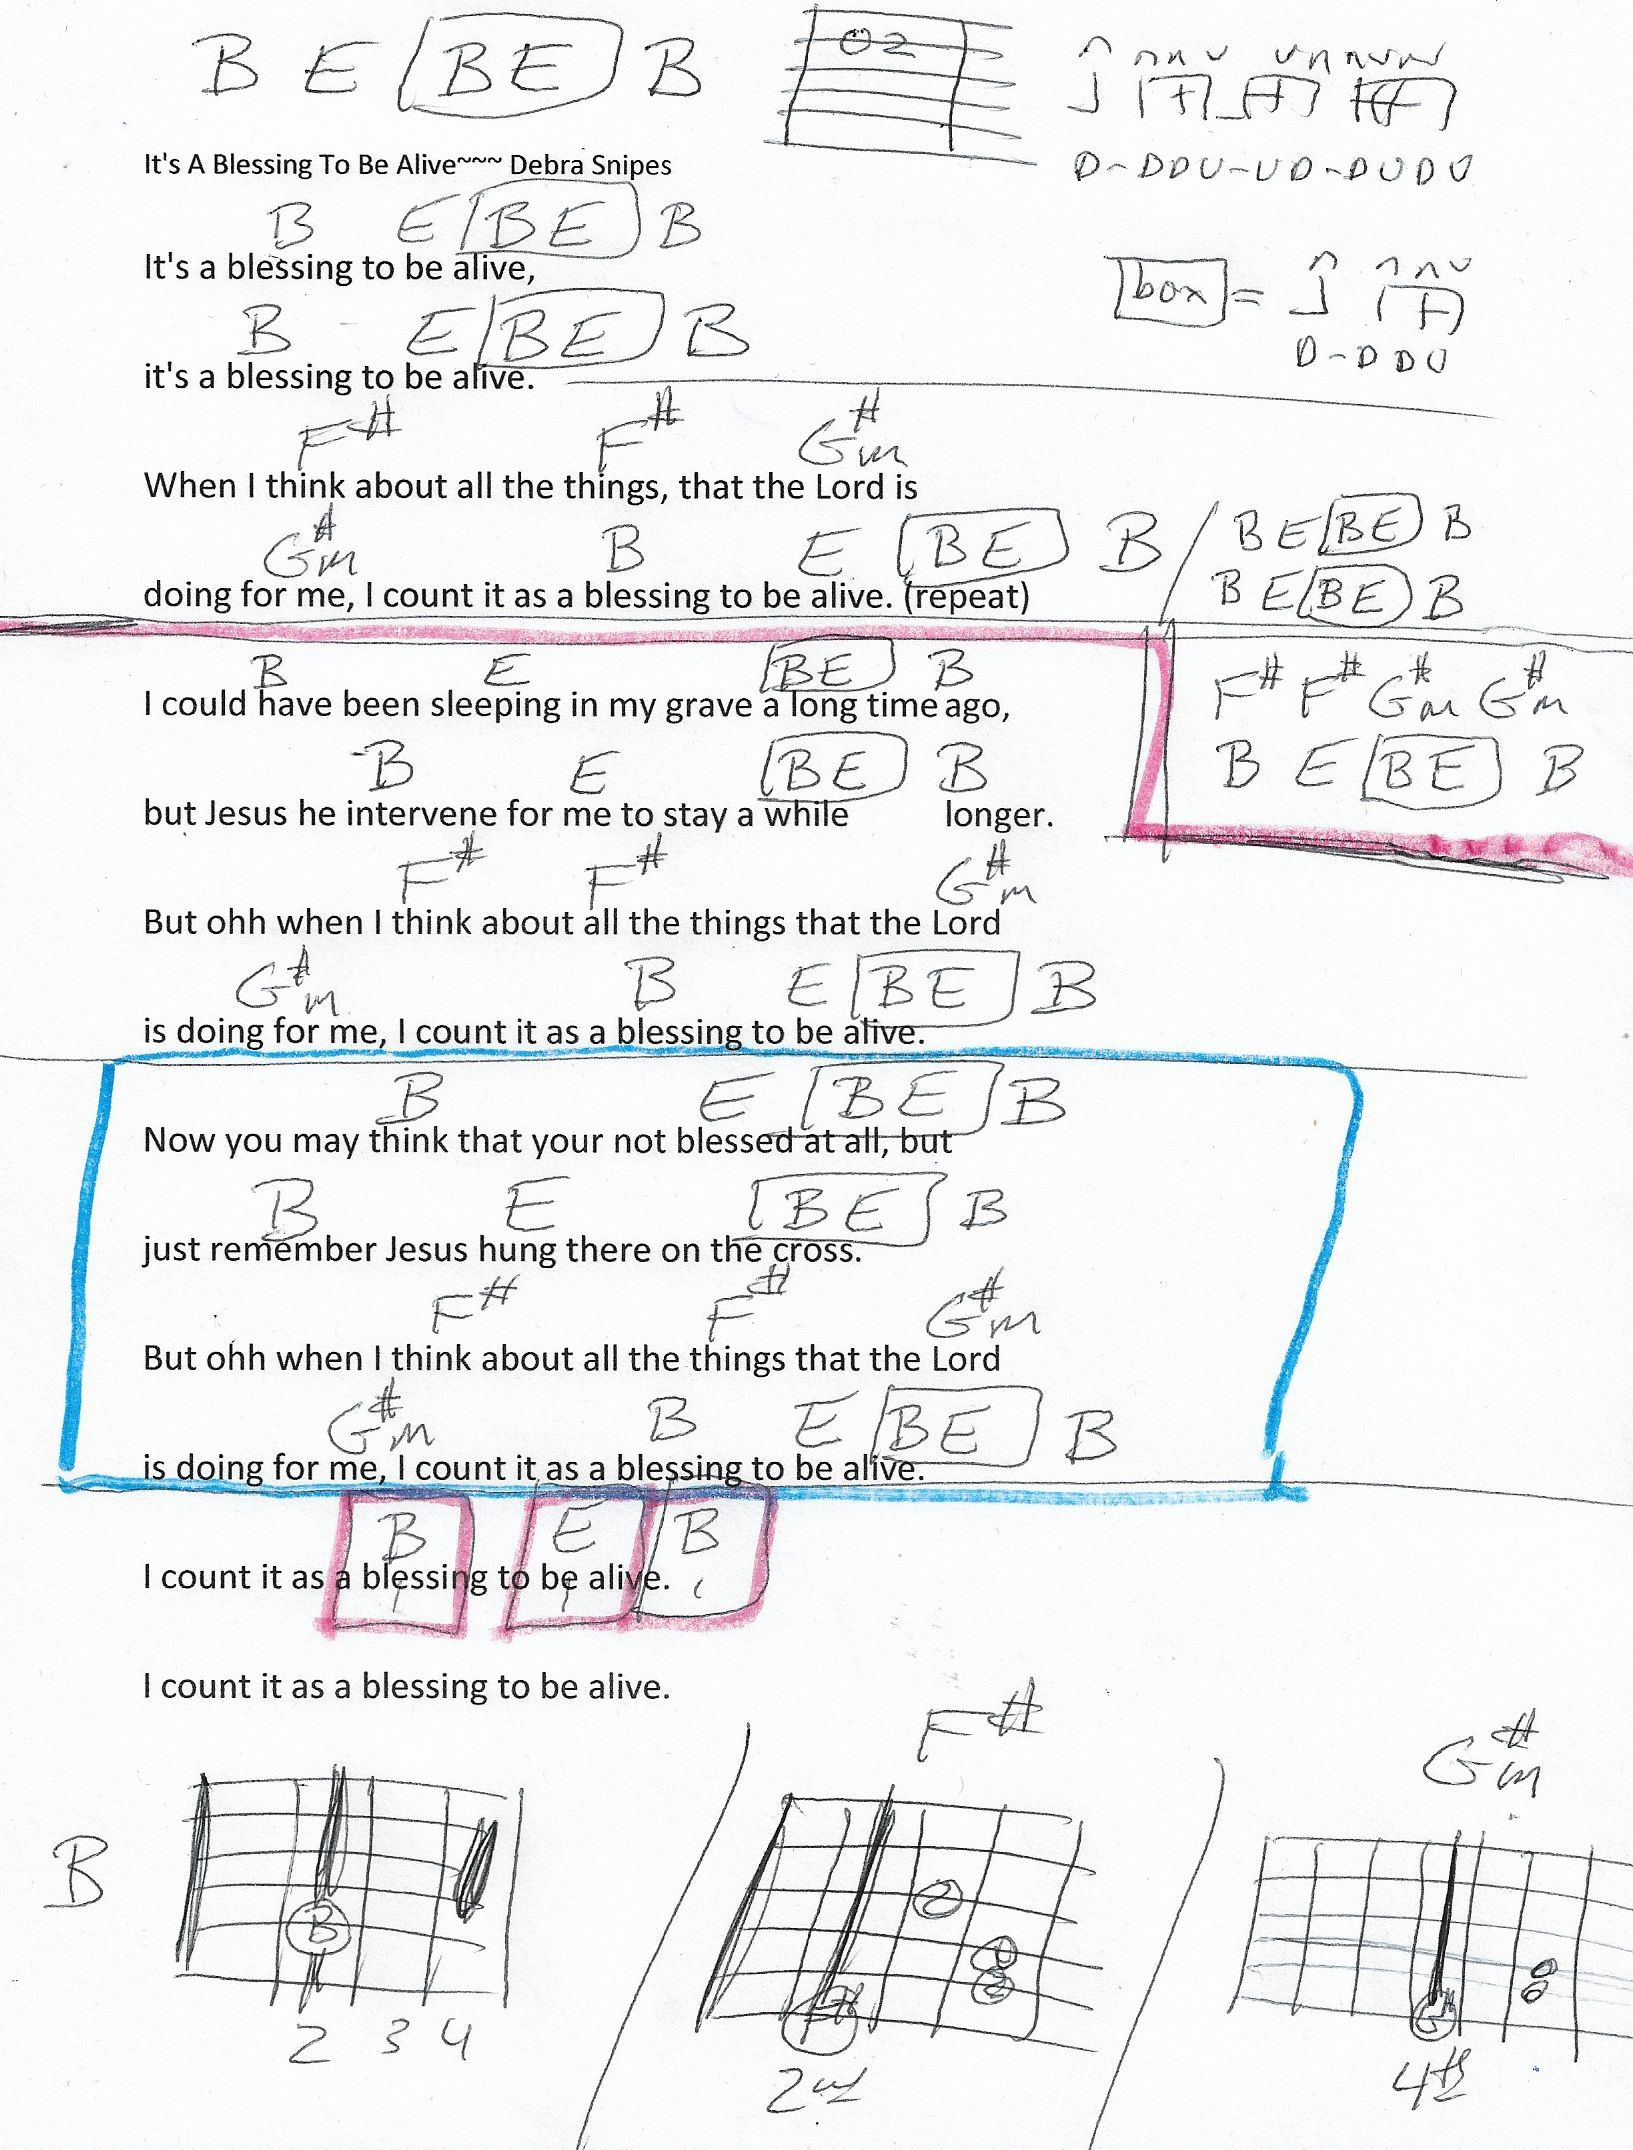 Its A Blessing Debra Snipes Guitar Chord Chart In B Major Real